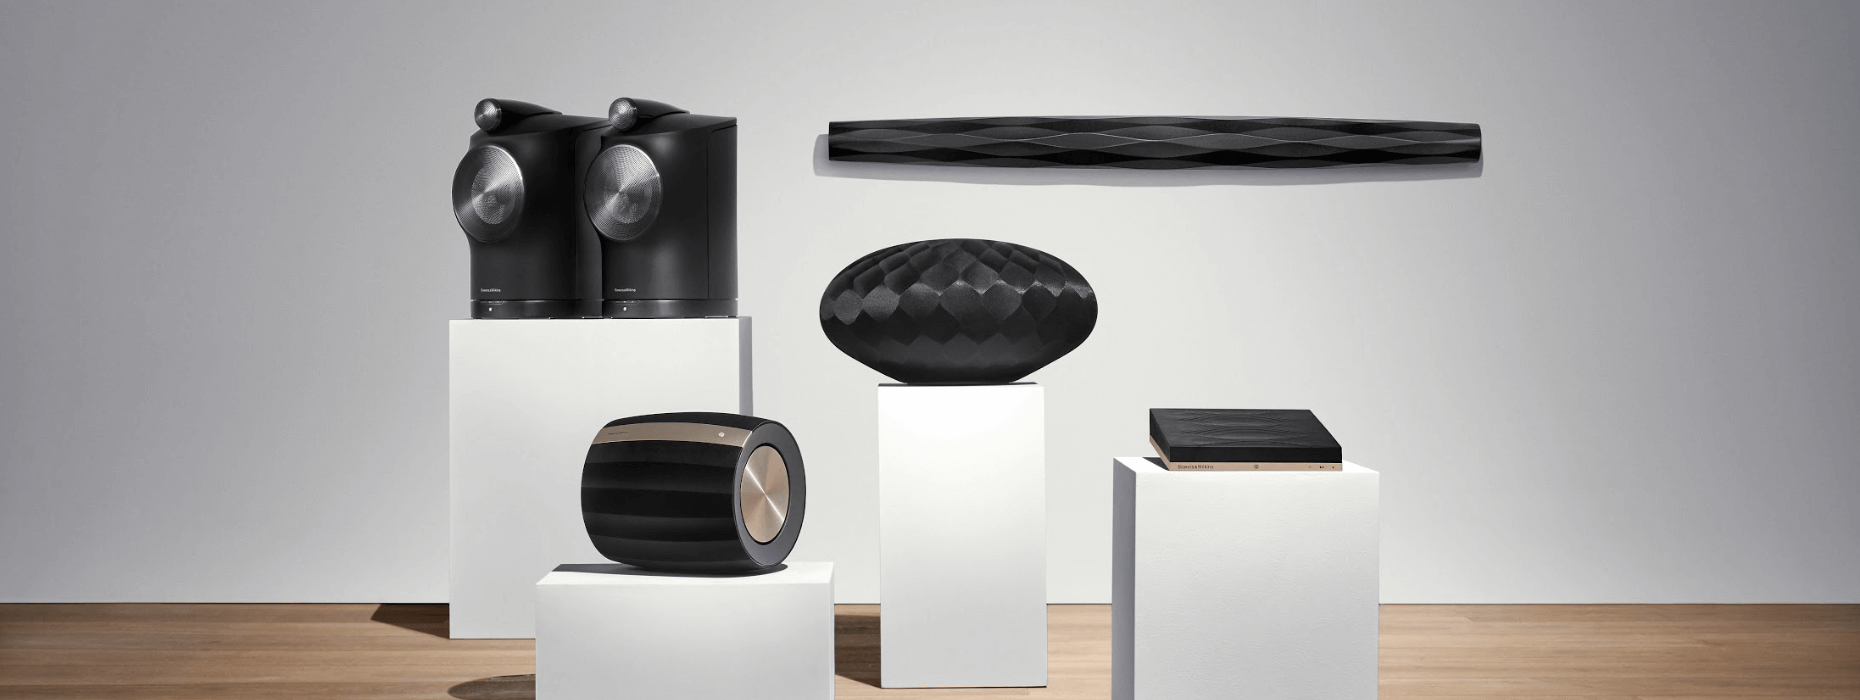 Next Vision_Haute fidelite_B&W_Bowers and Wilkins_Gamme formation